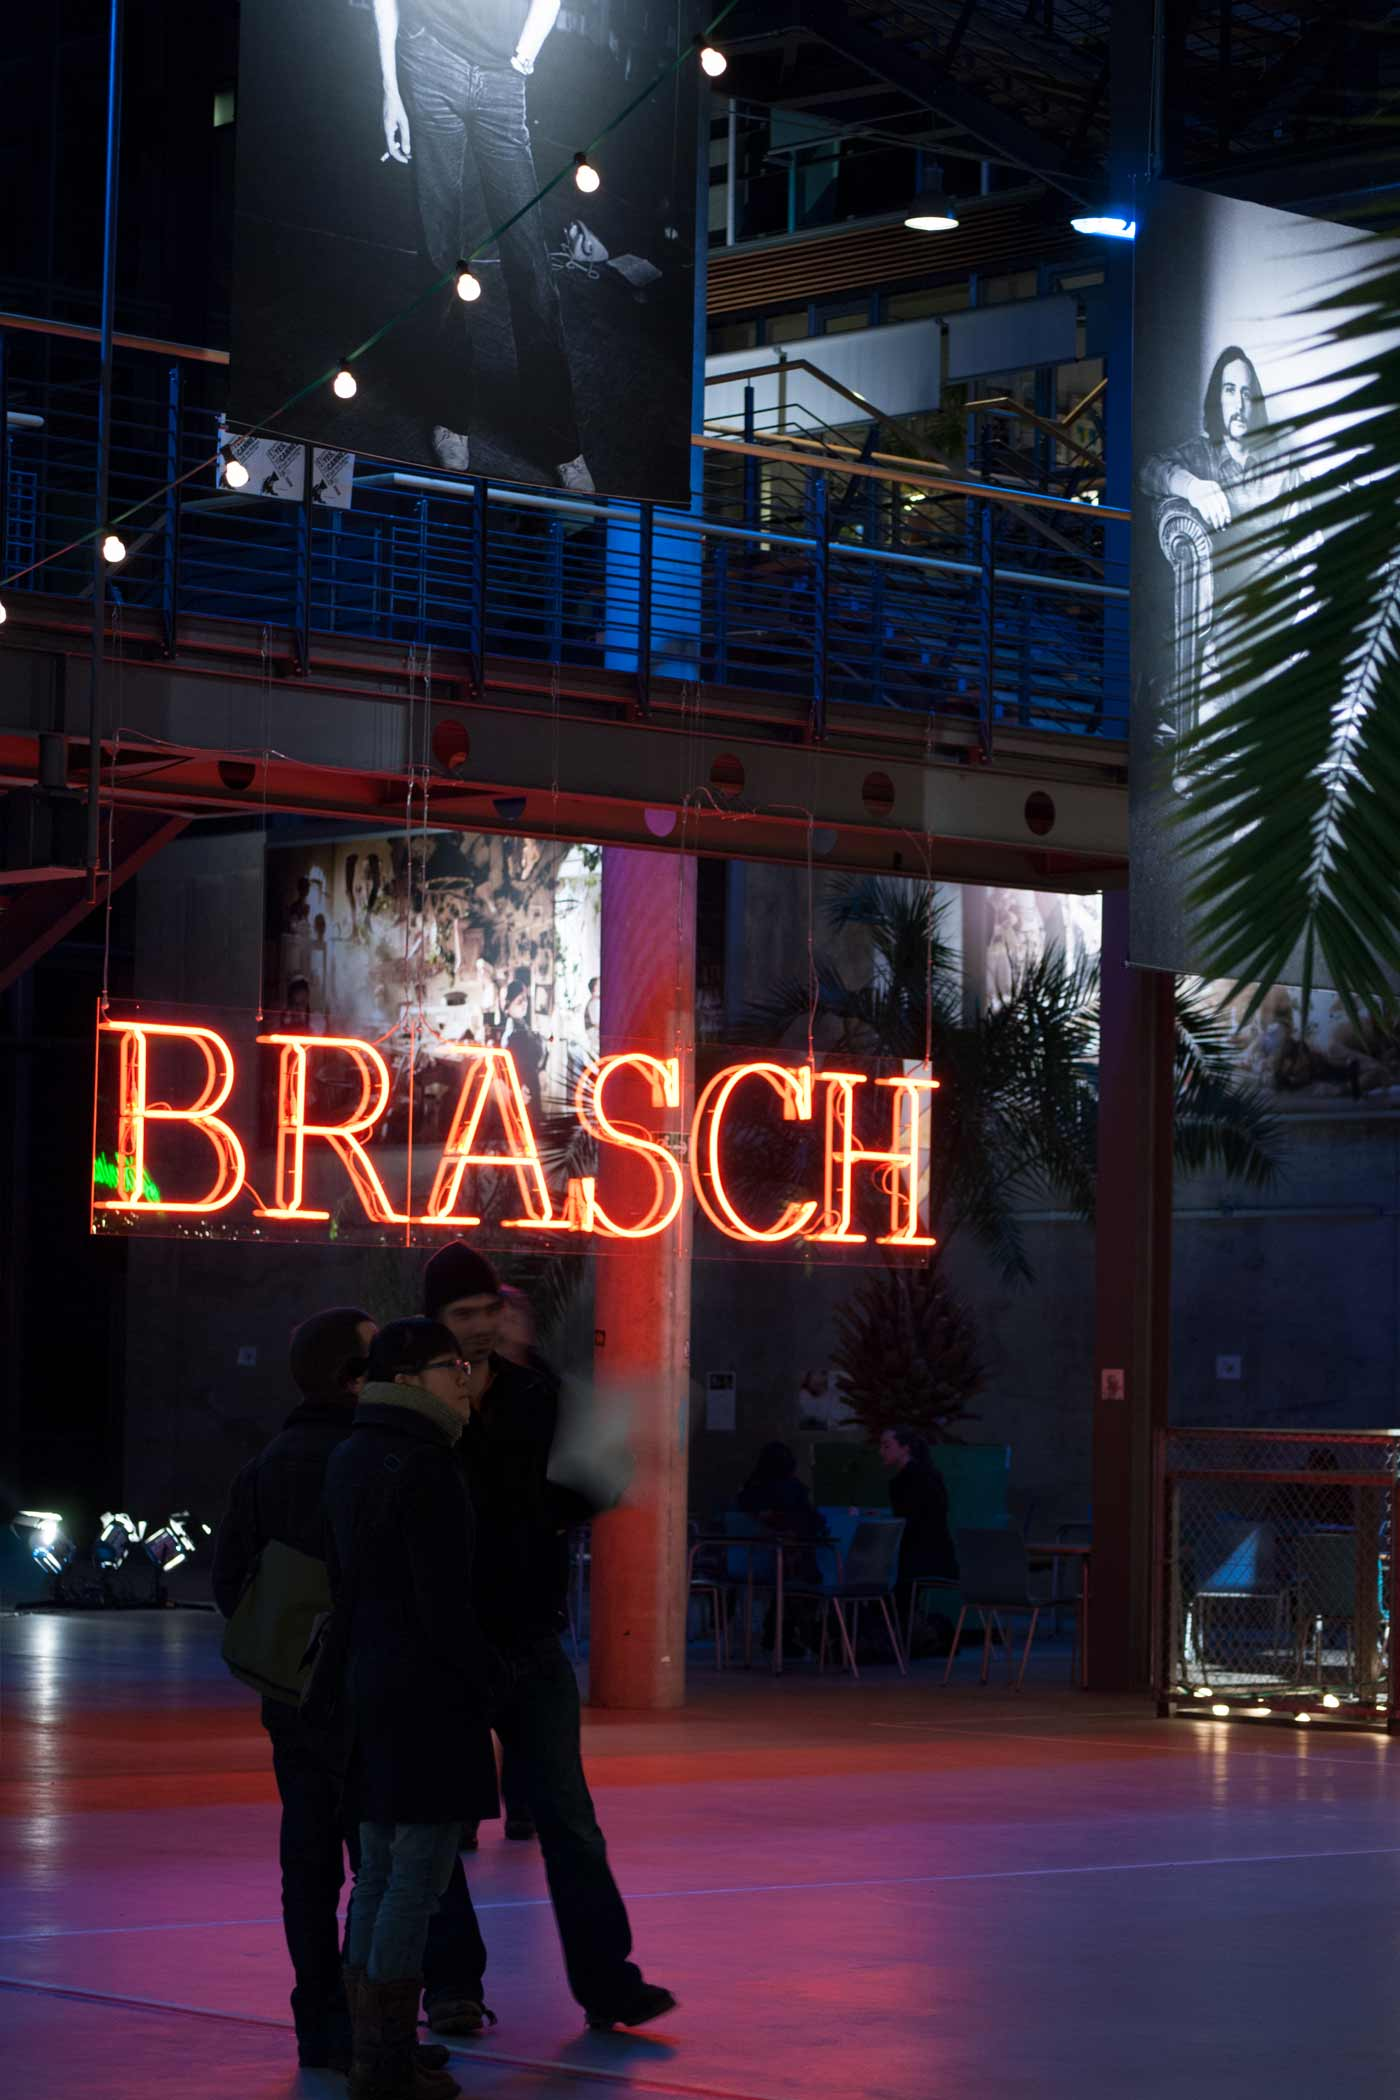 HFF Atrium with Brasch neon sign